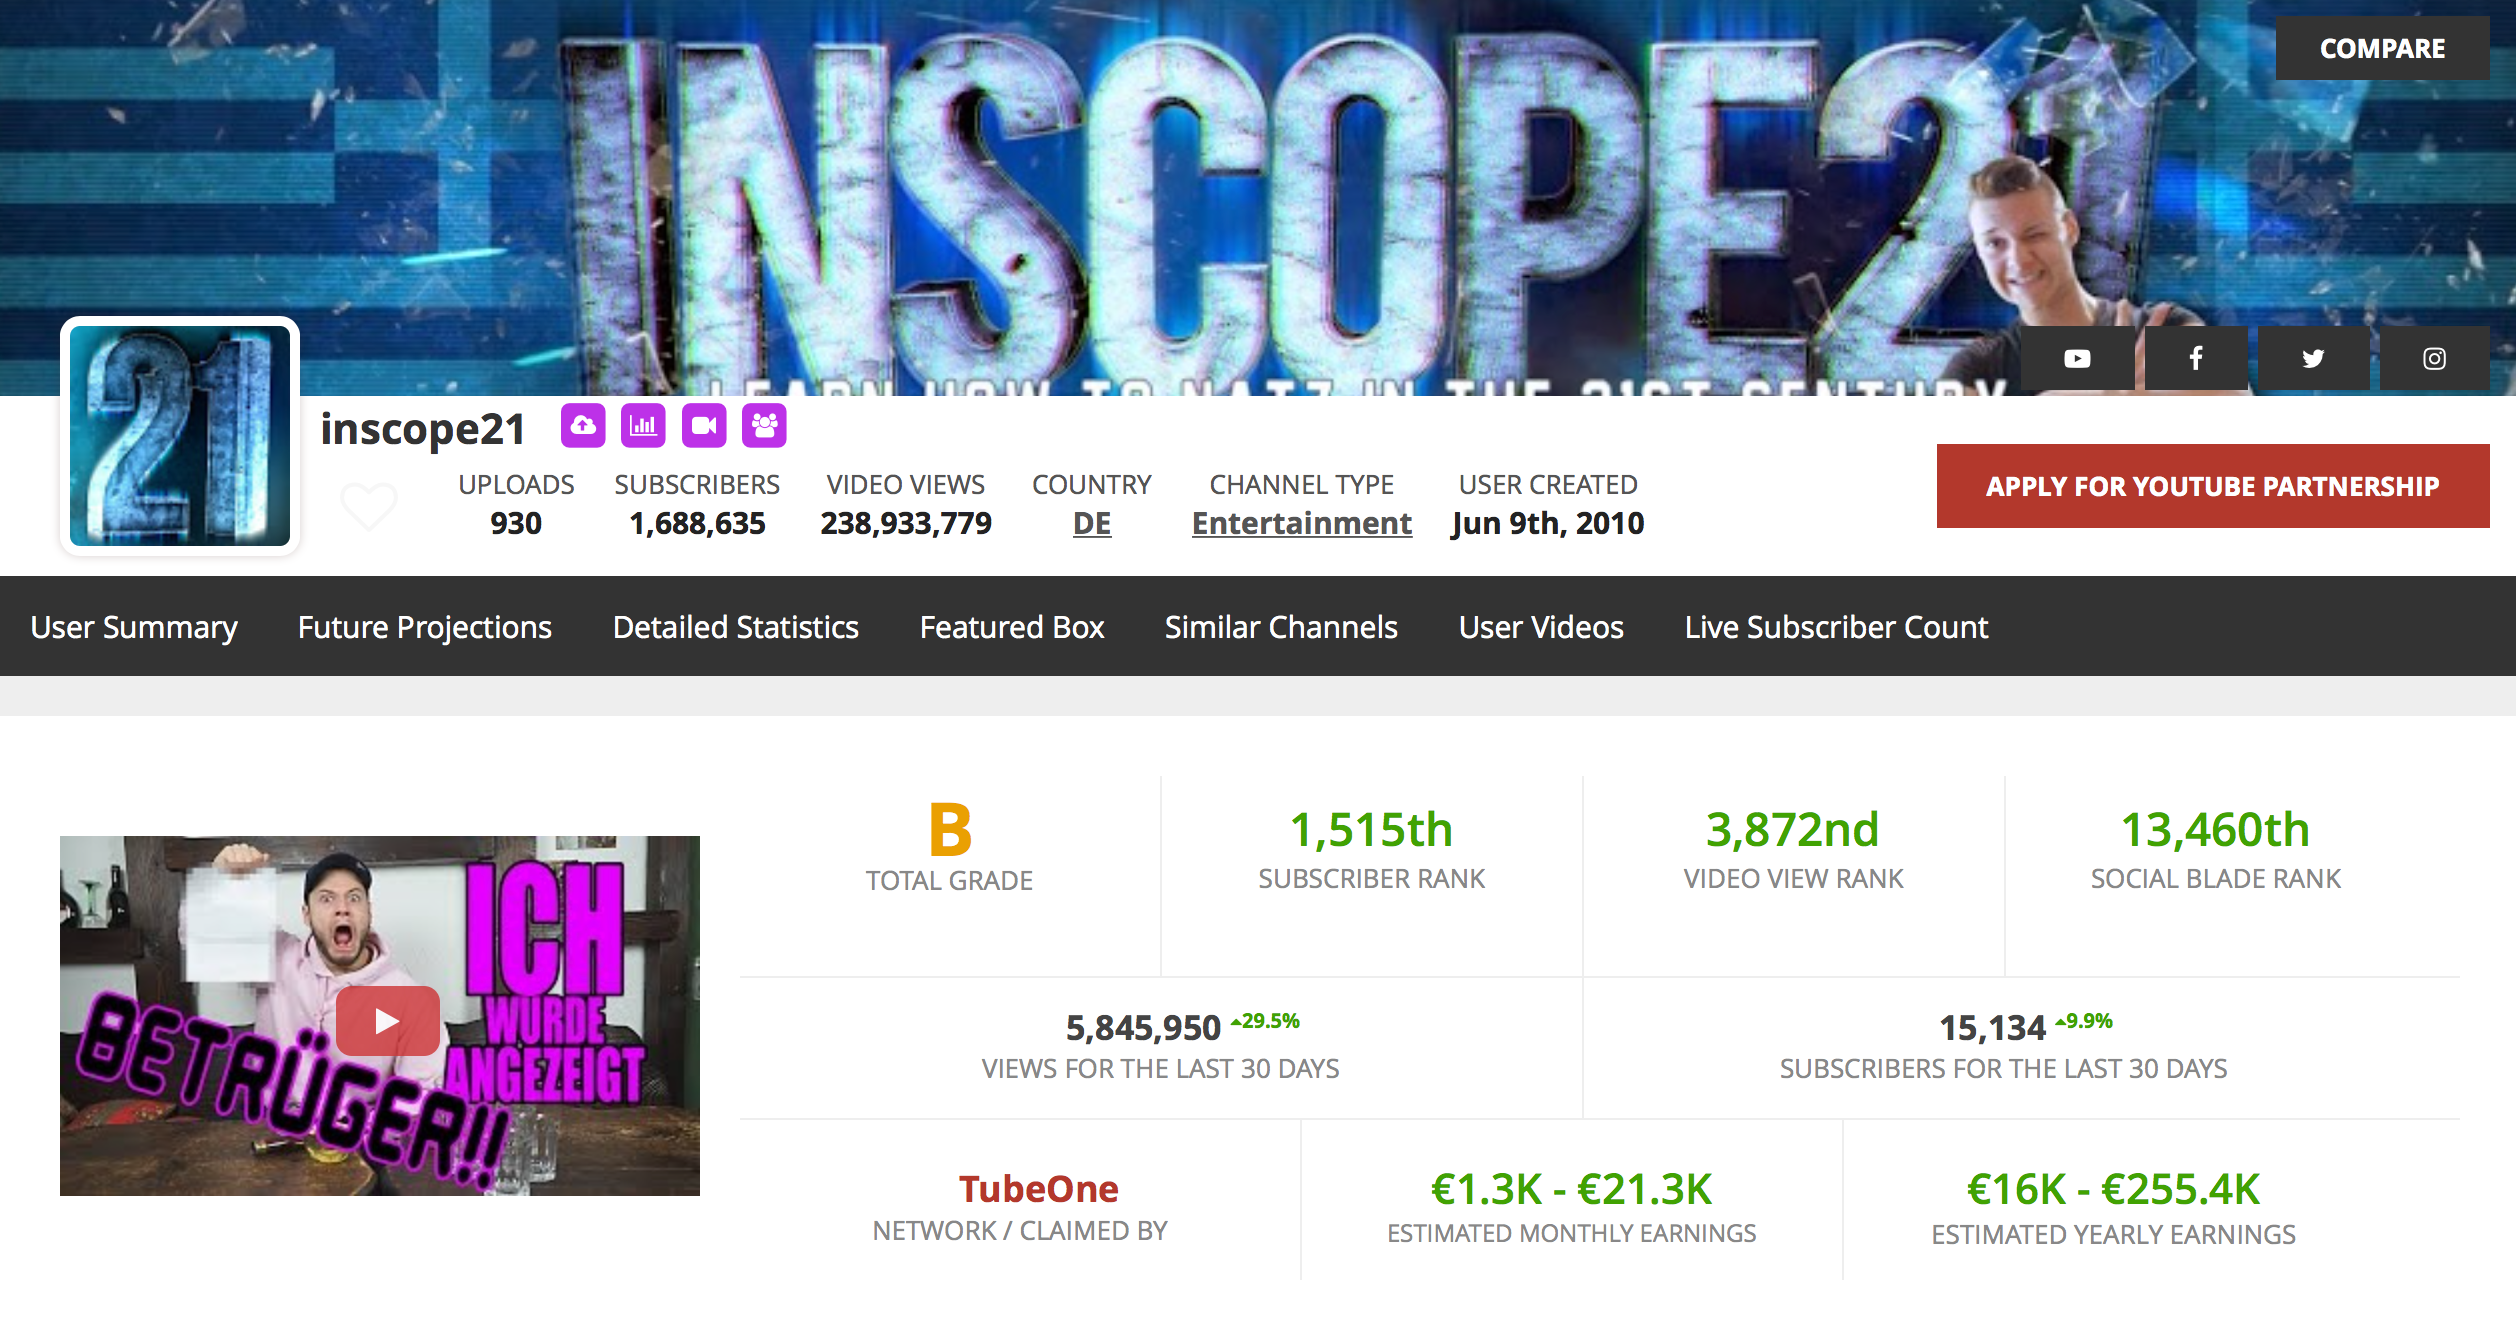 Inscope21 SocialBlade